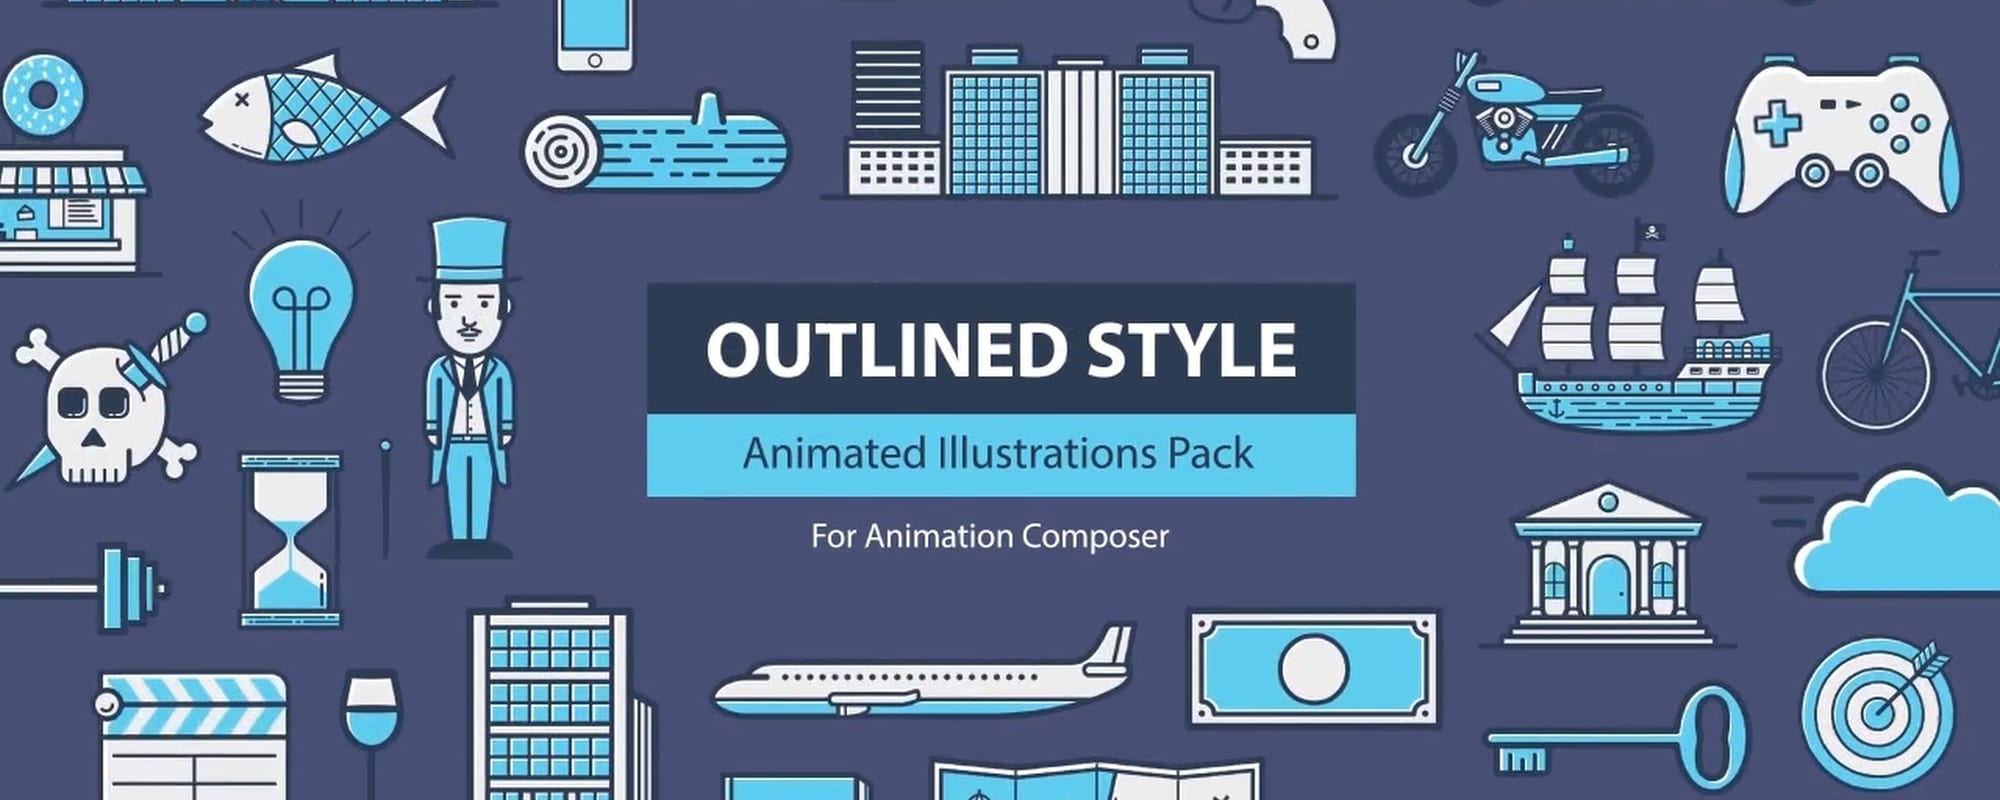 animated textures bundle for animation composer フラッシュバック